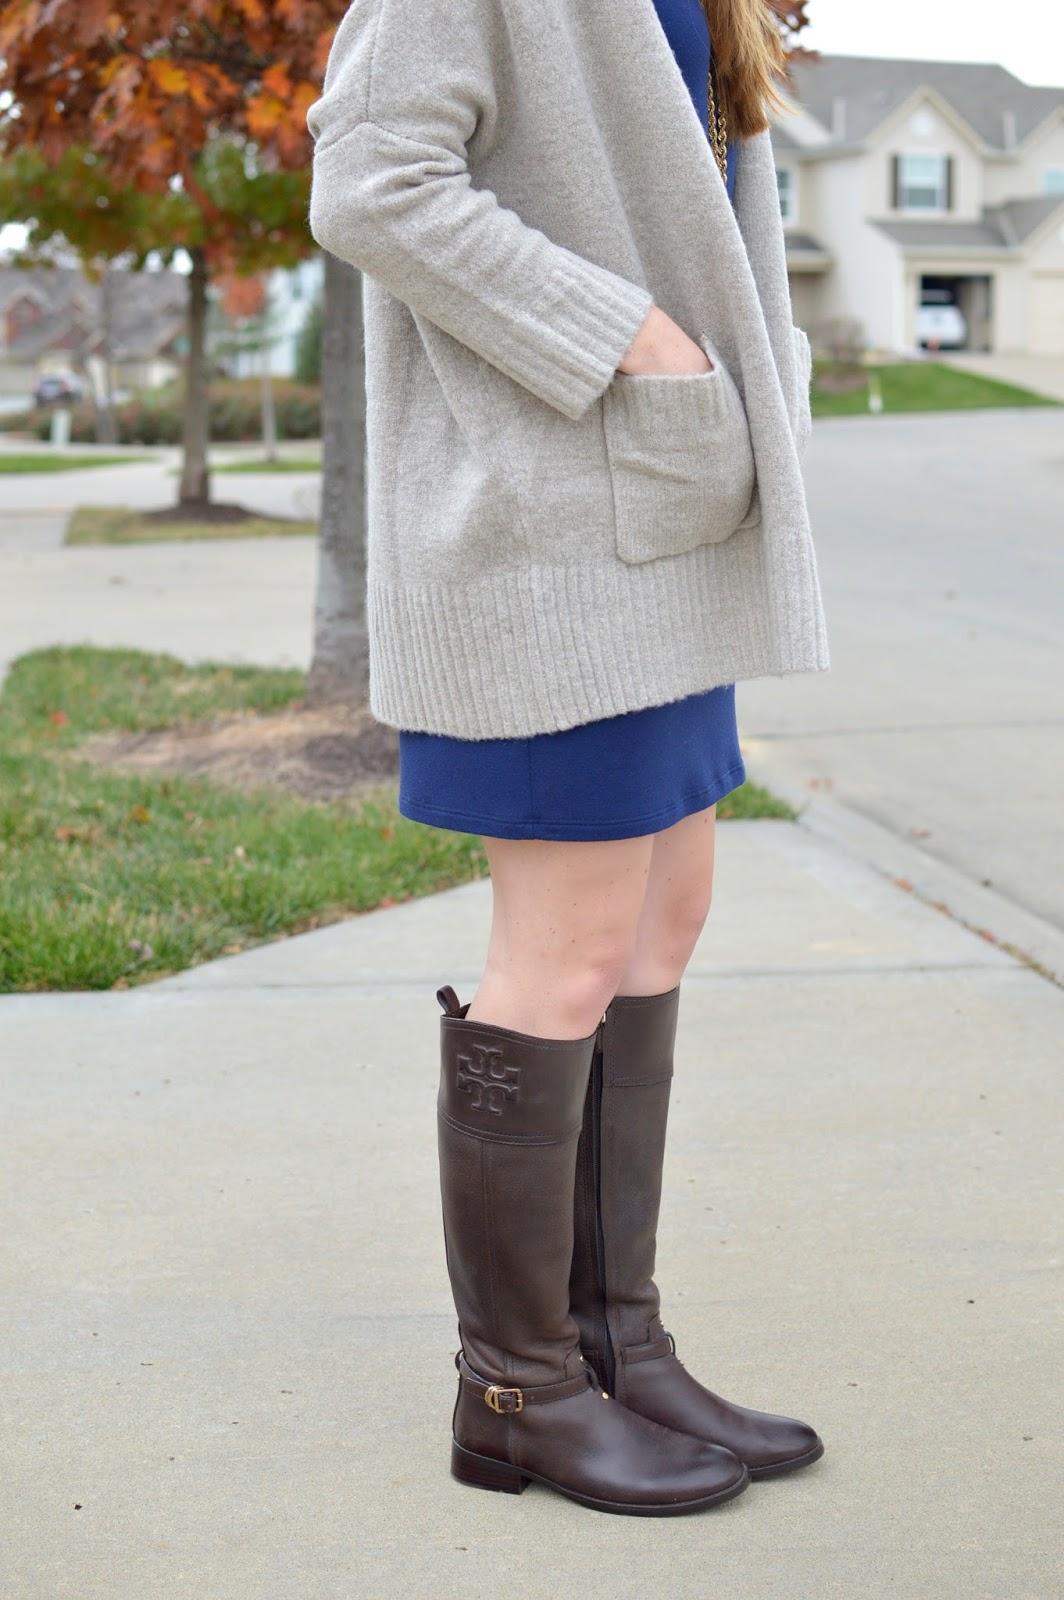 tory burch riding boots with a sweater for winter